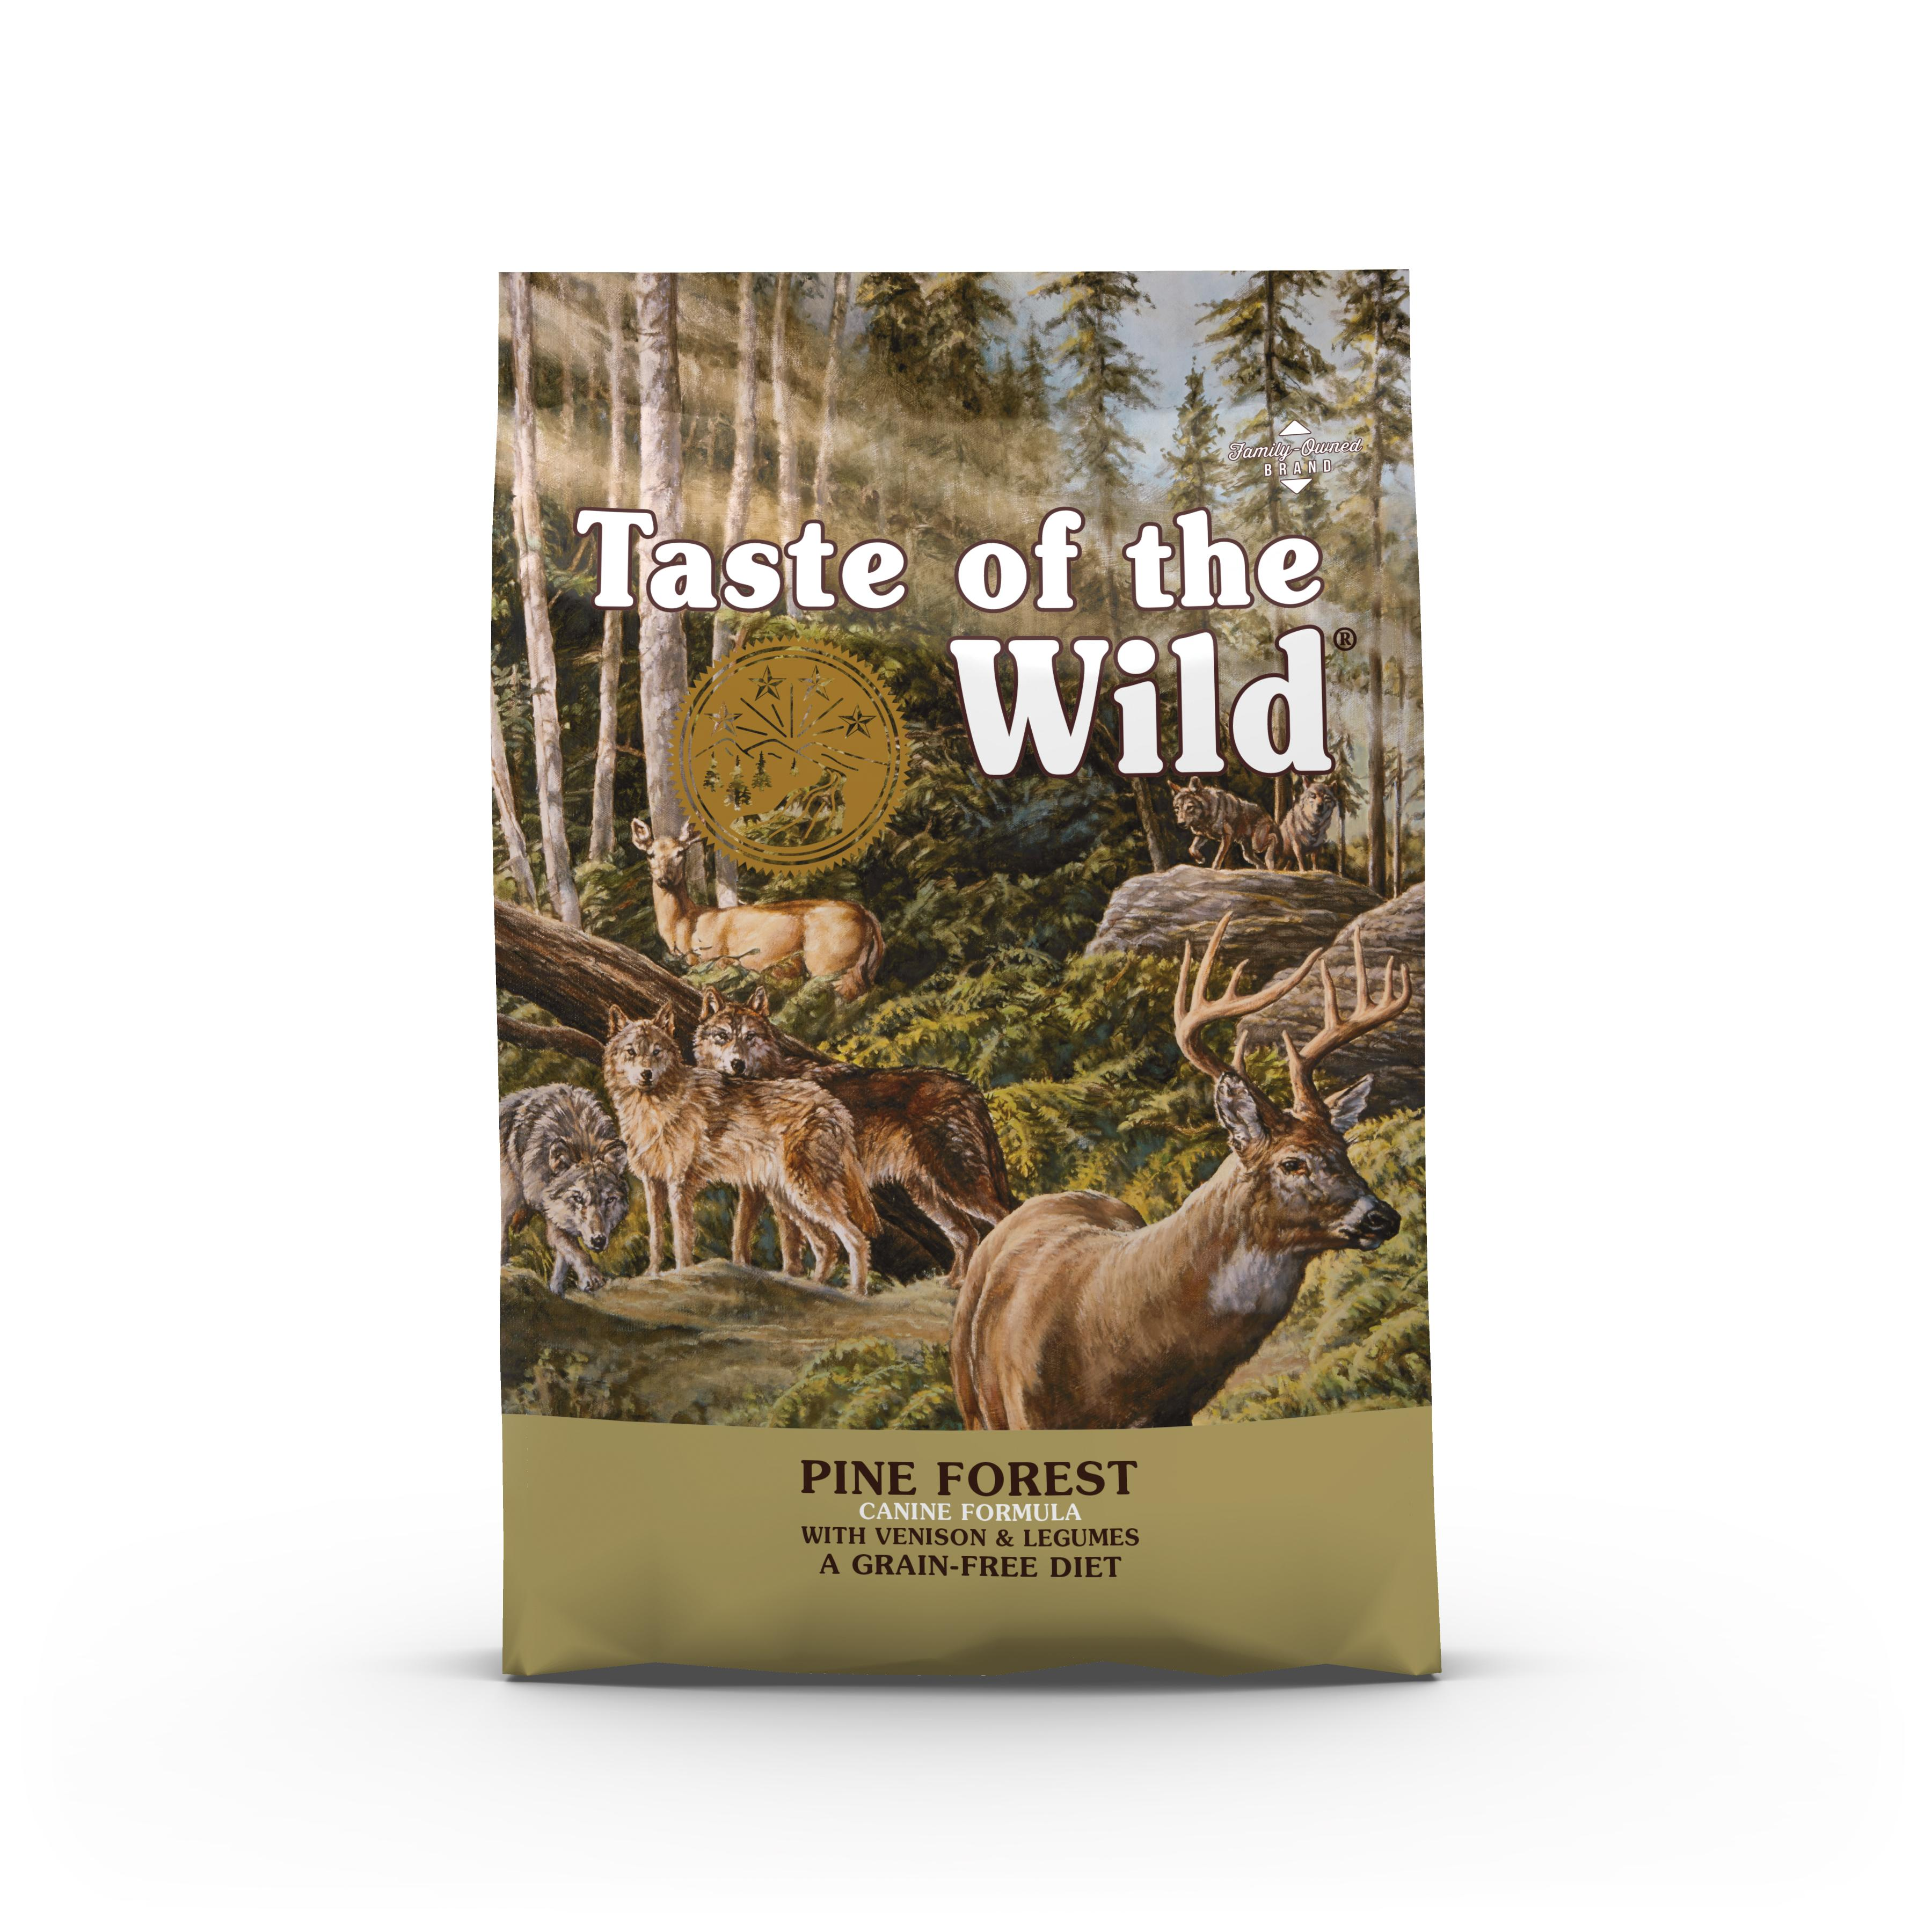 taste of the wild pine forest food